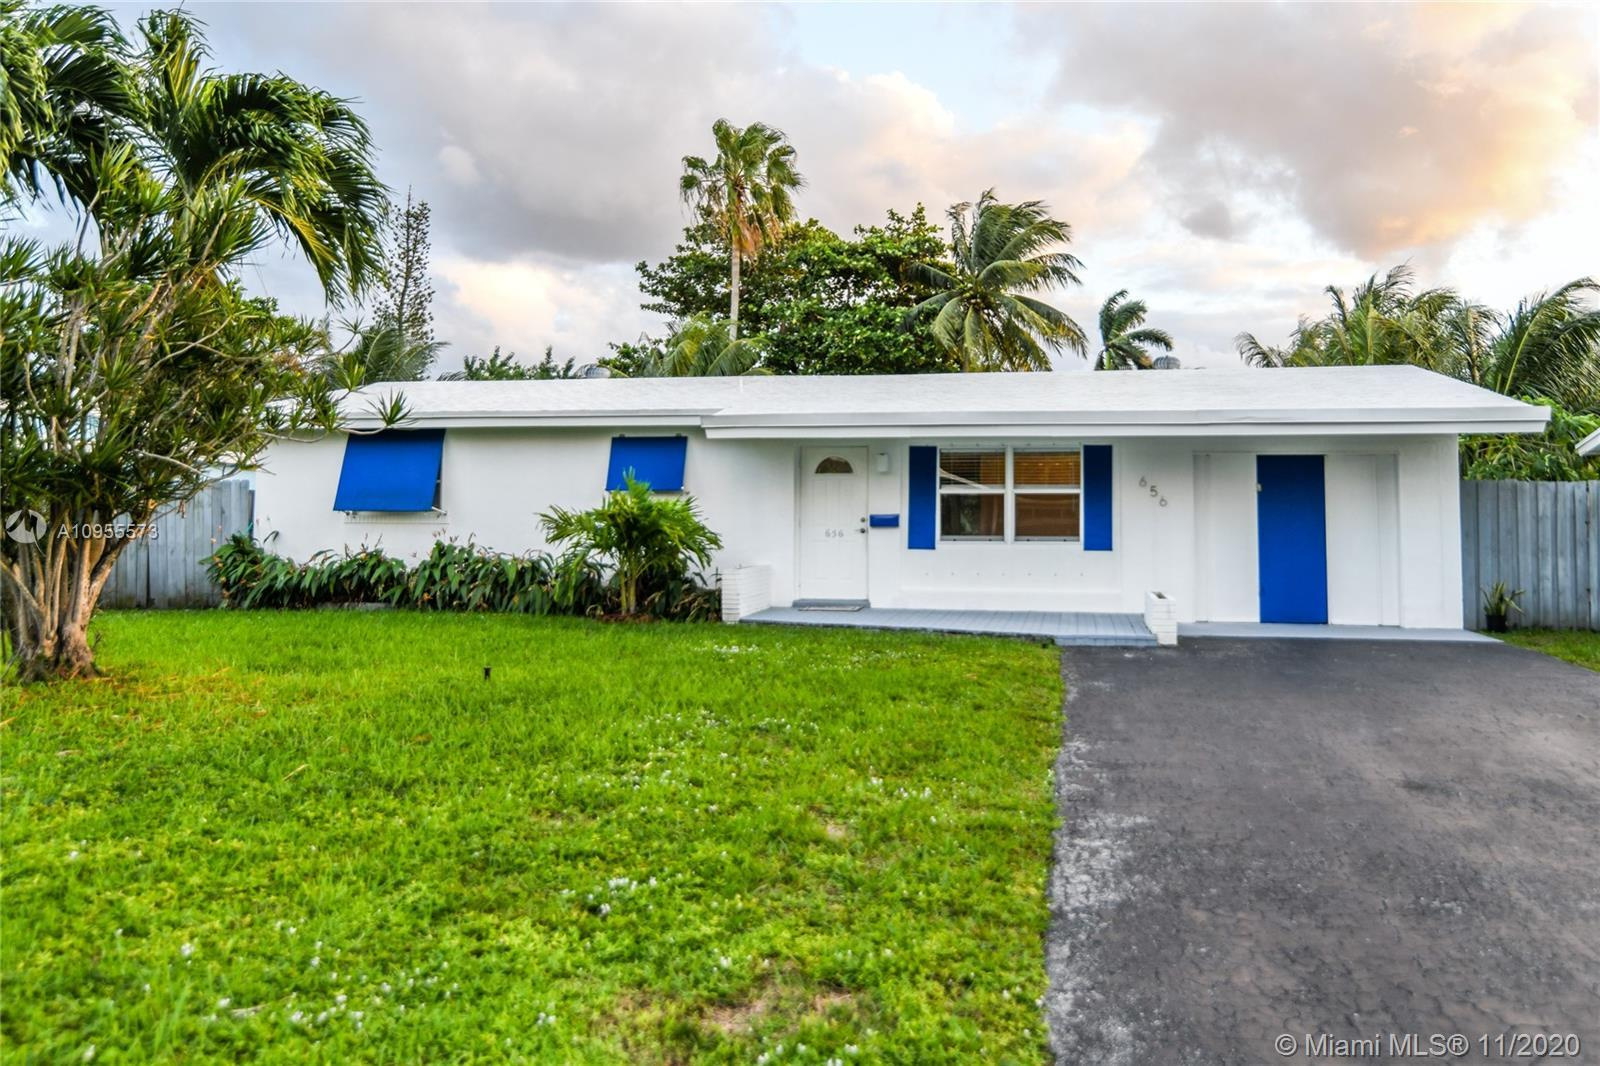 WATERFRONT HOME – Over 70 feet of Waterfront property on Middle River! This Riverfront Tropical Oasi